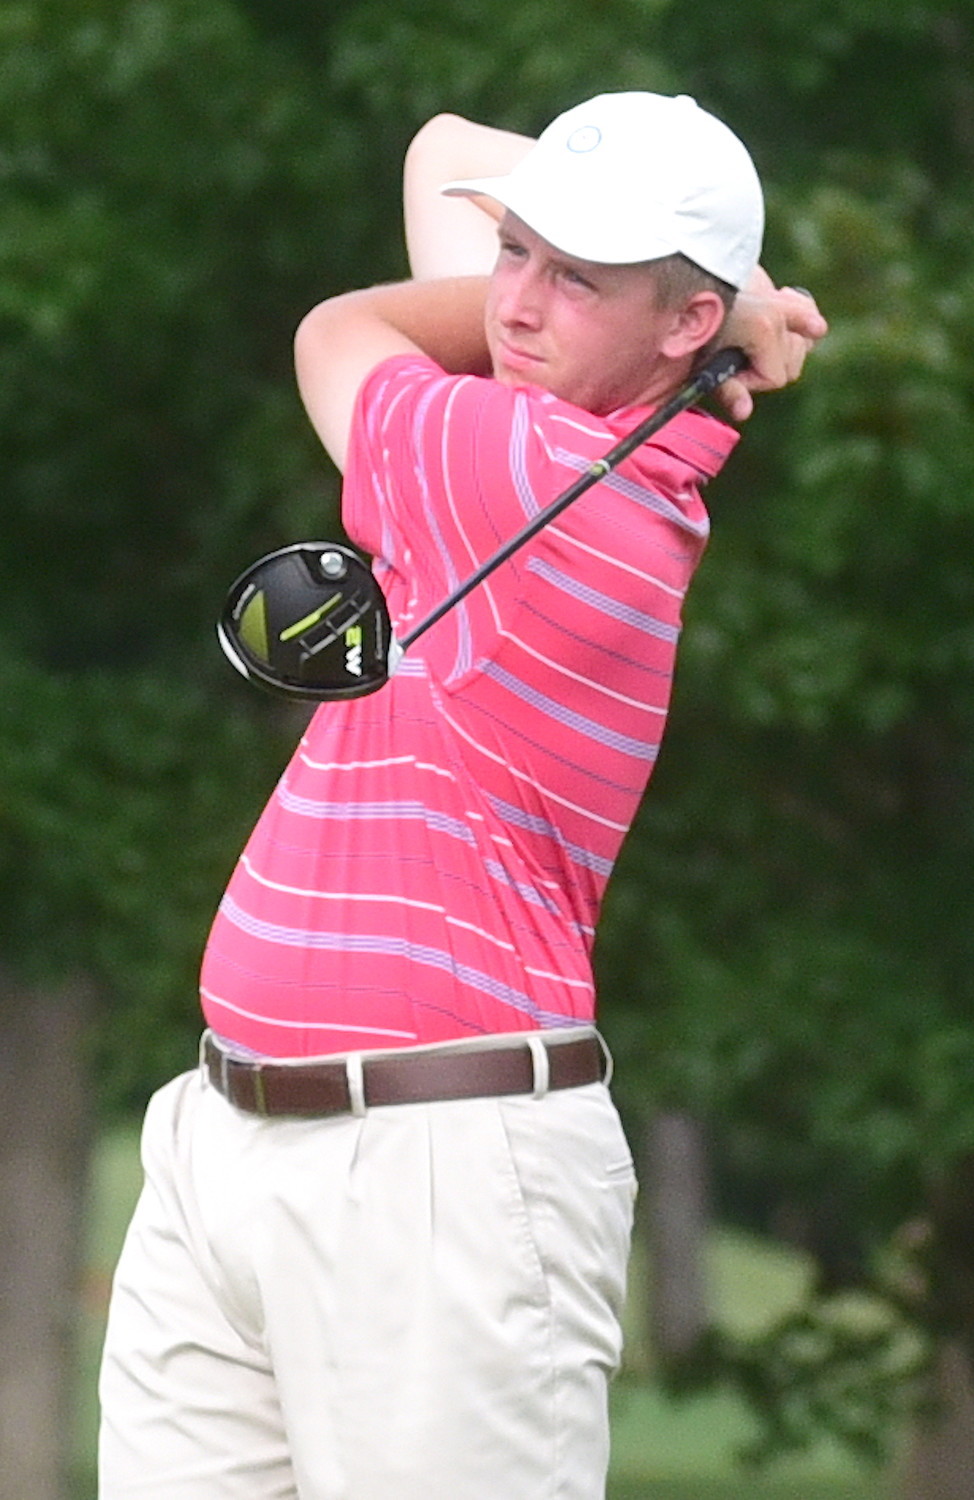 Falkville's Eli Marty watches his drive on the 17th hole during the final round of the 52nd annual Travis Hudson/Bernard Weinstein Invitational at Musgrove Country Club on Sunday. Marty won the tournament by three strokes.